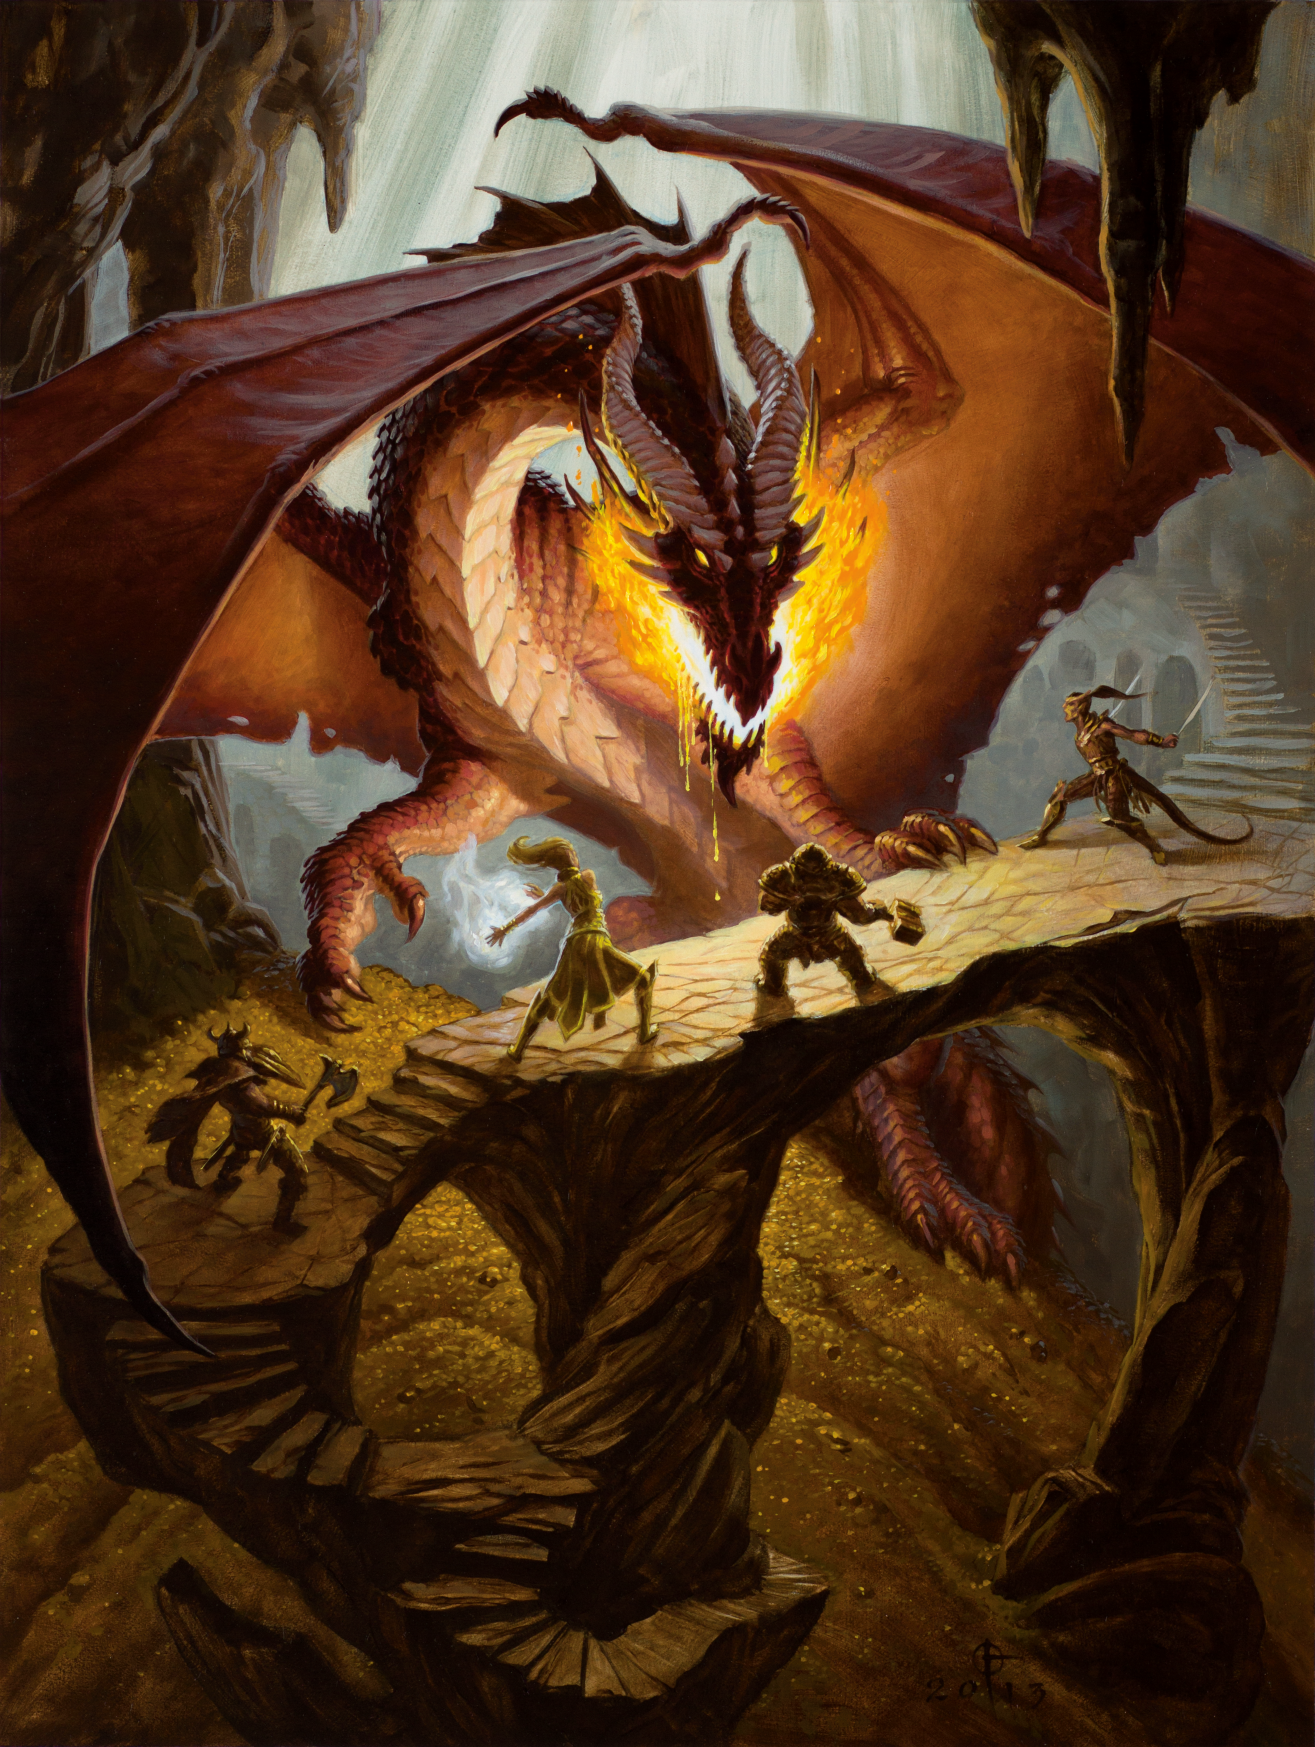 An image showing a group of characters fighting a dragon